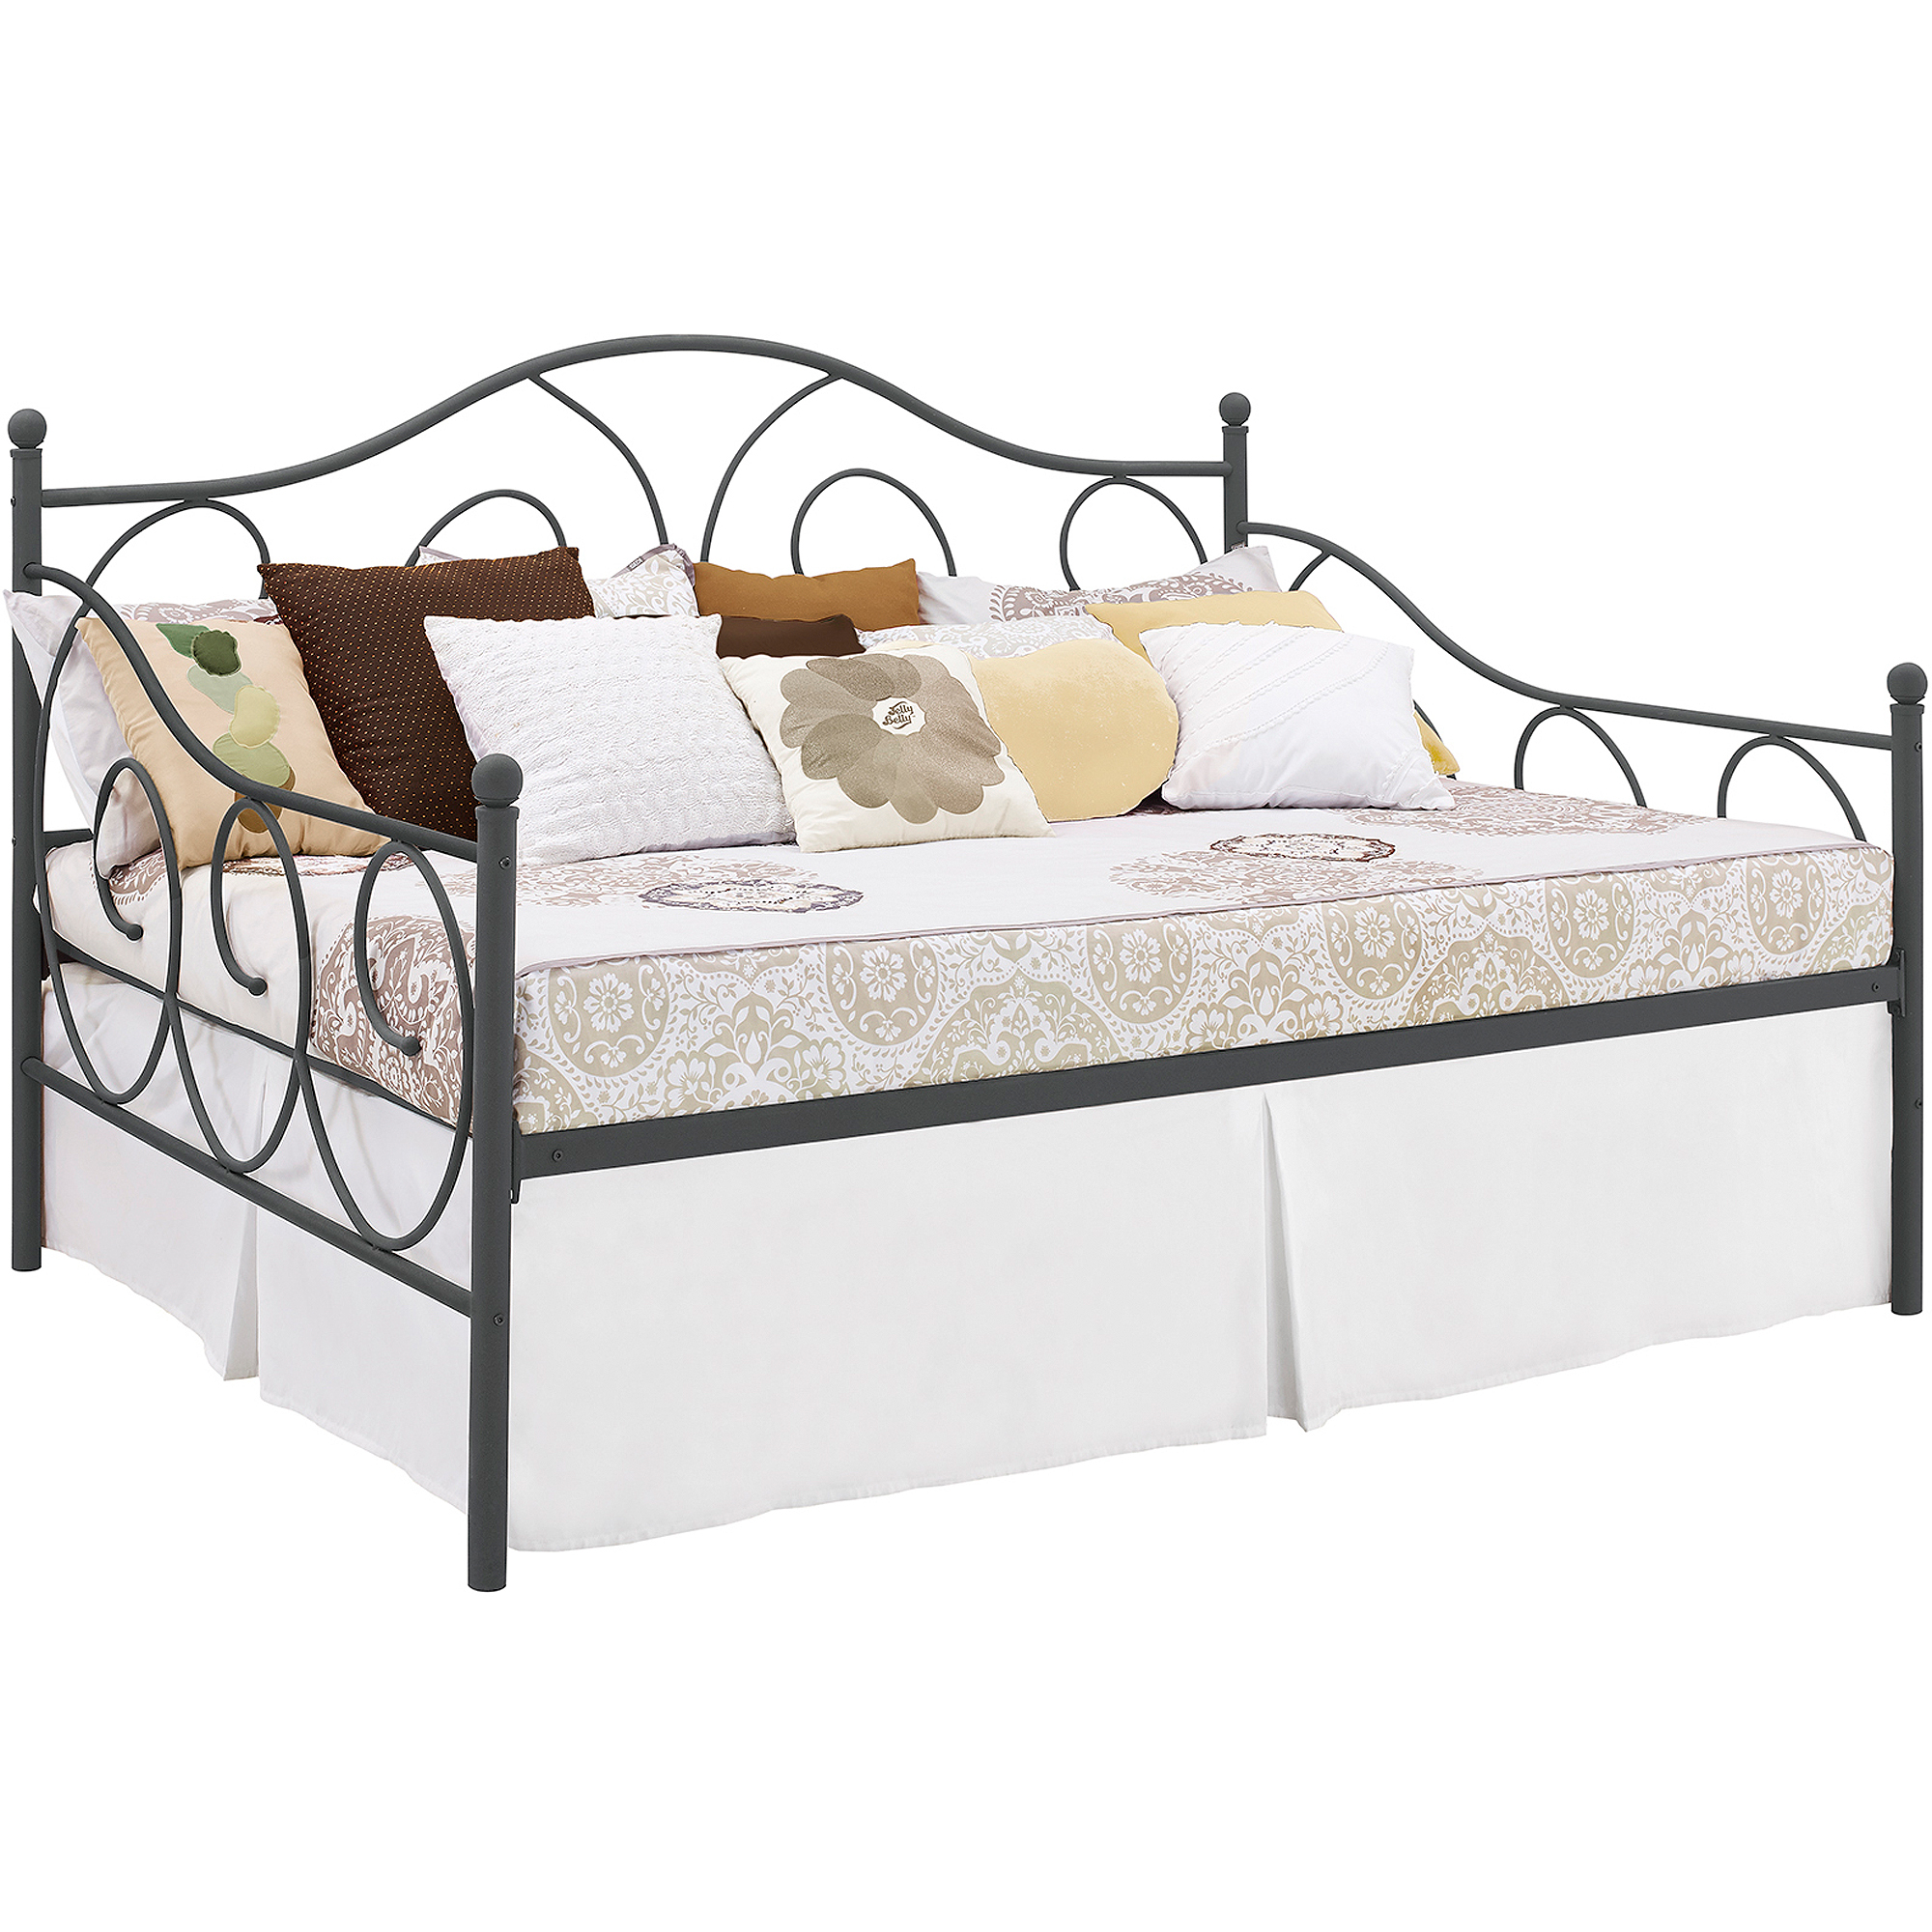 DHP Victoria Full Size Metal Daybed Frame, Multiple Colors